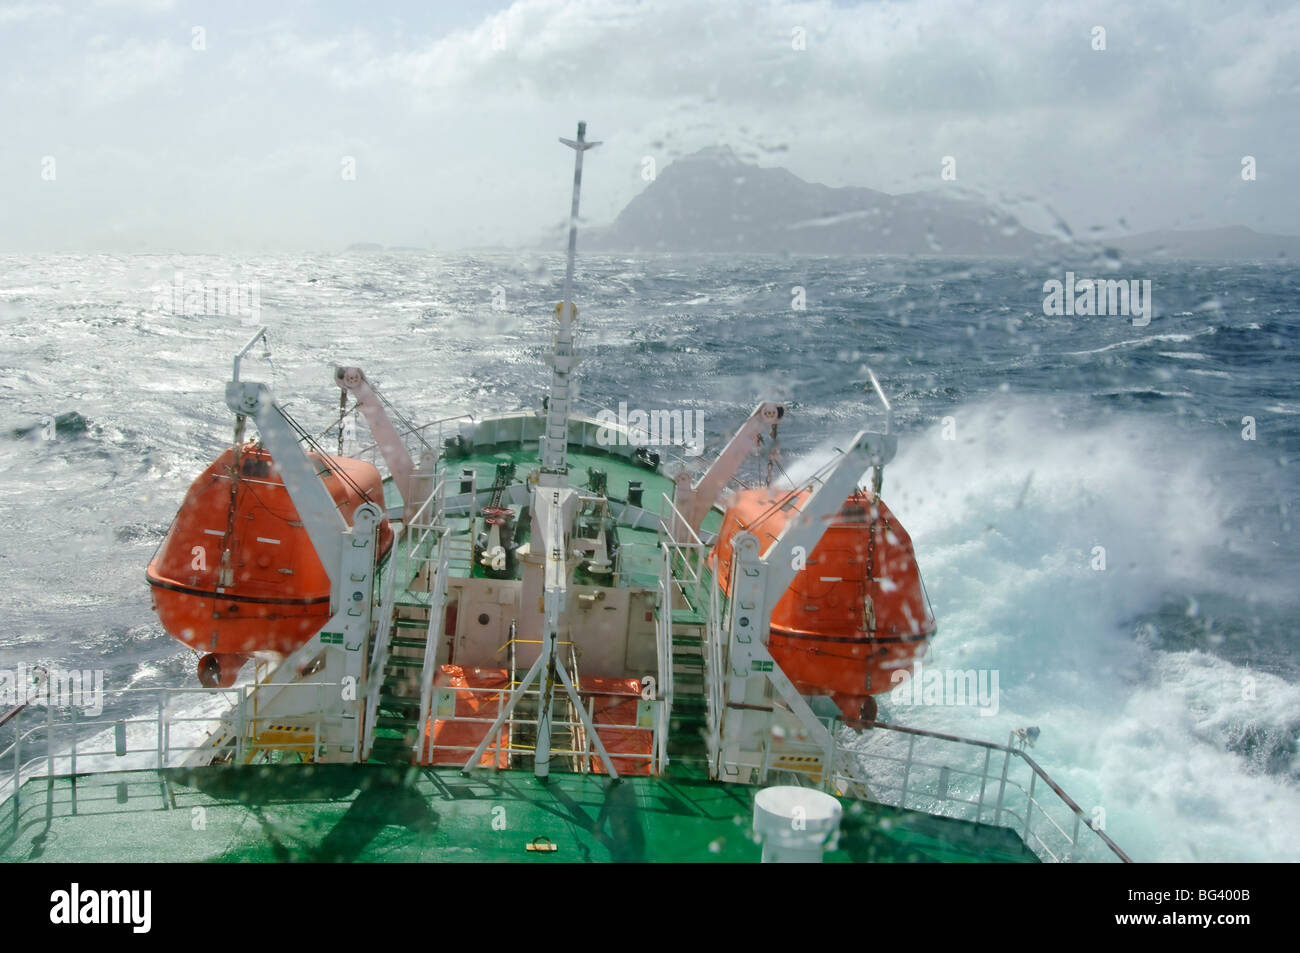 Antarctic Dream in the Drake Passage near Cape Horn, Chile, South America - Stock Image